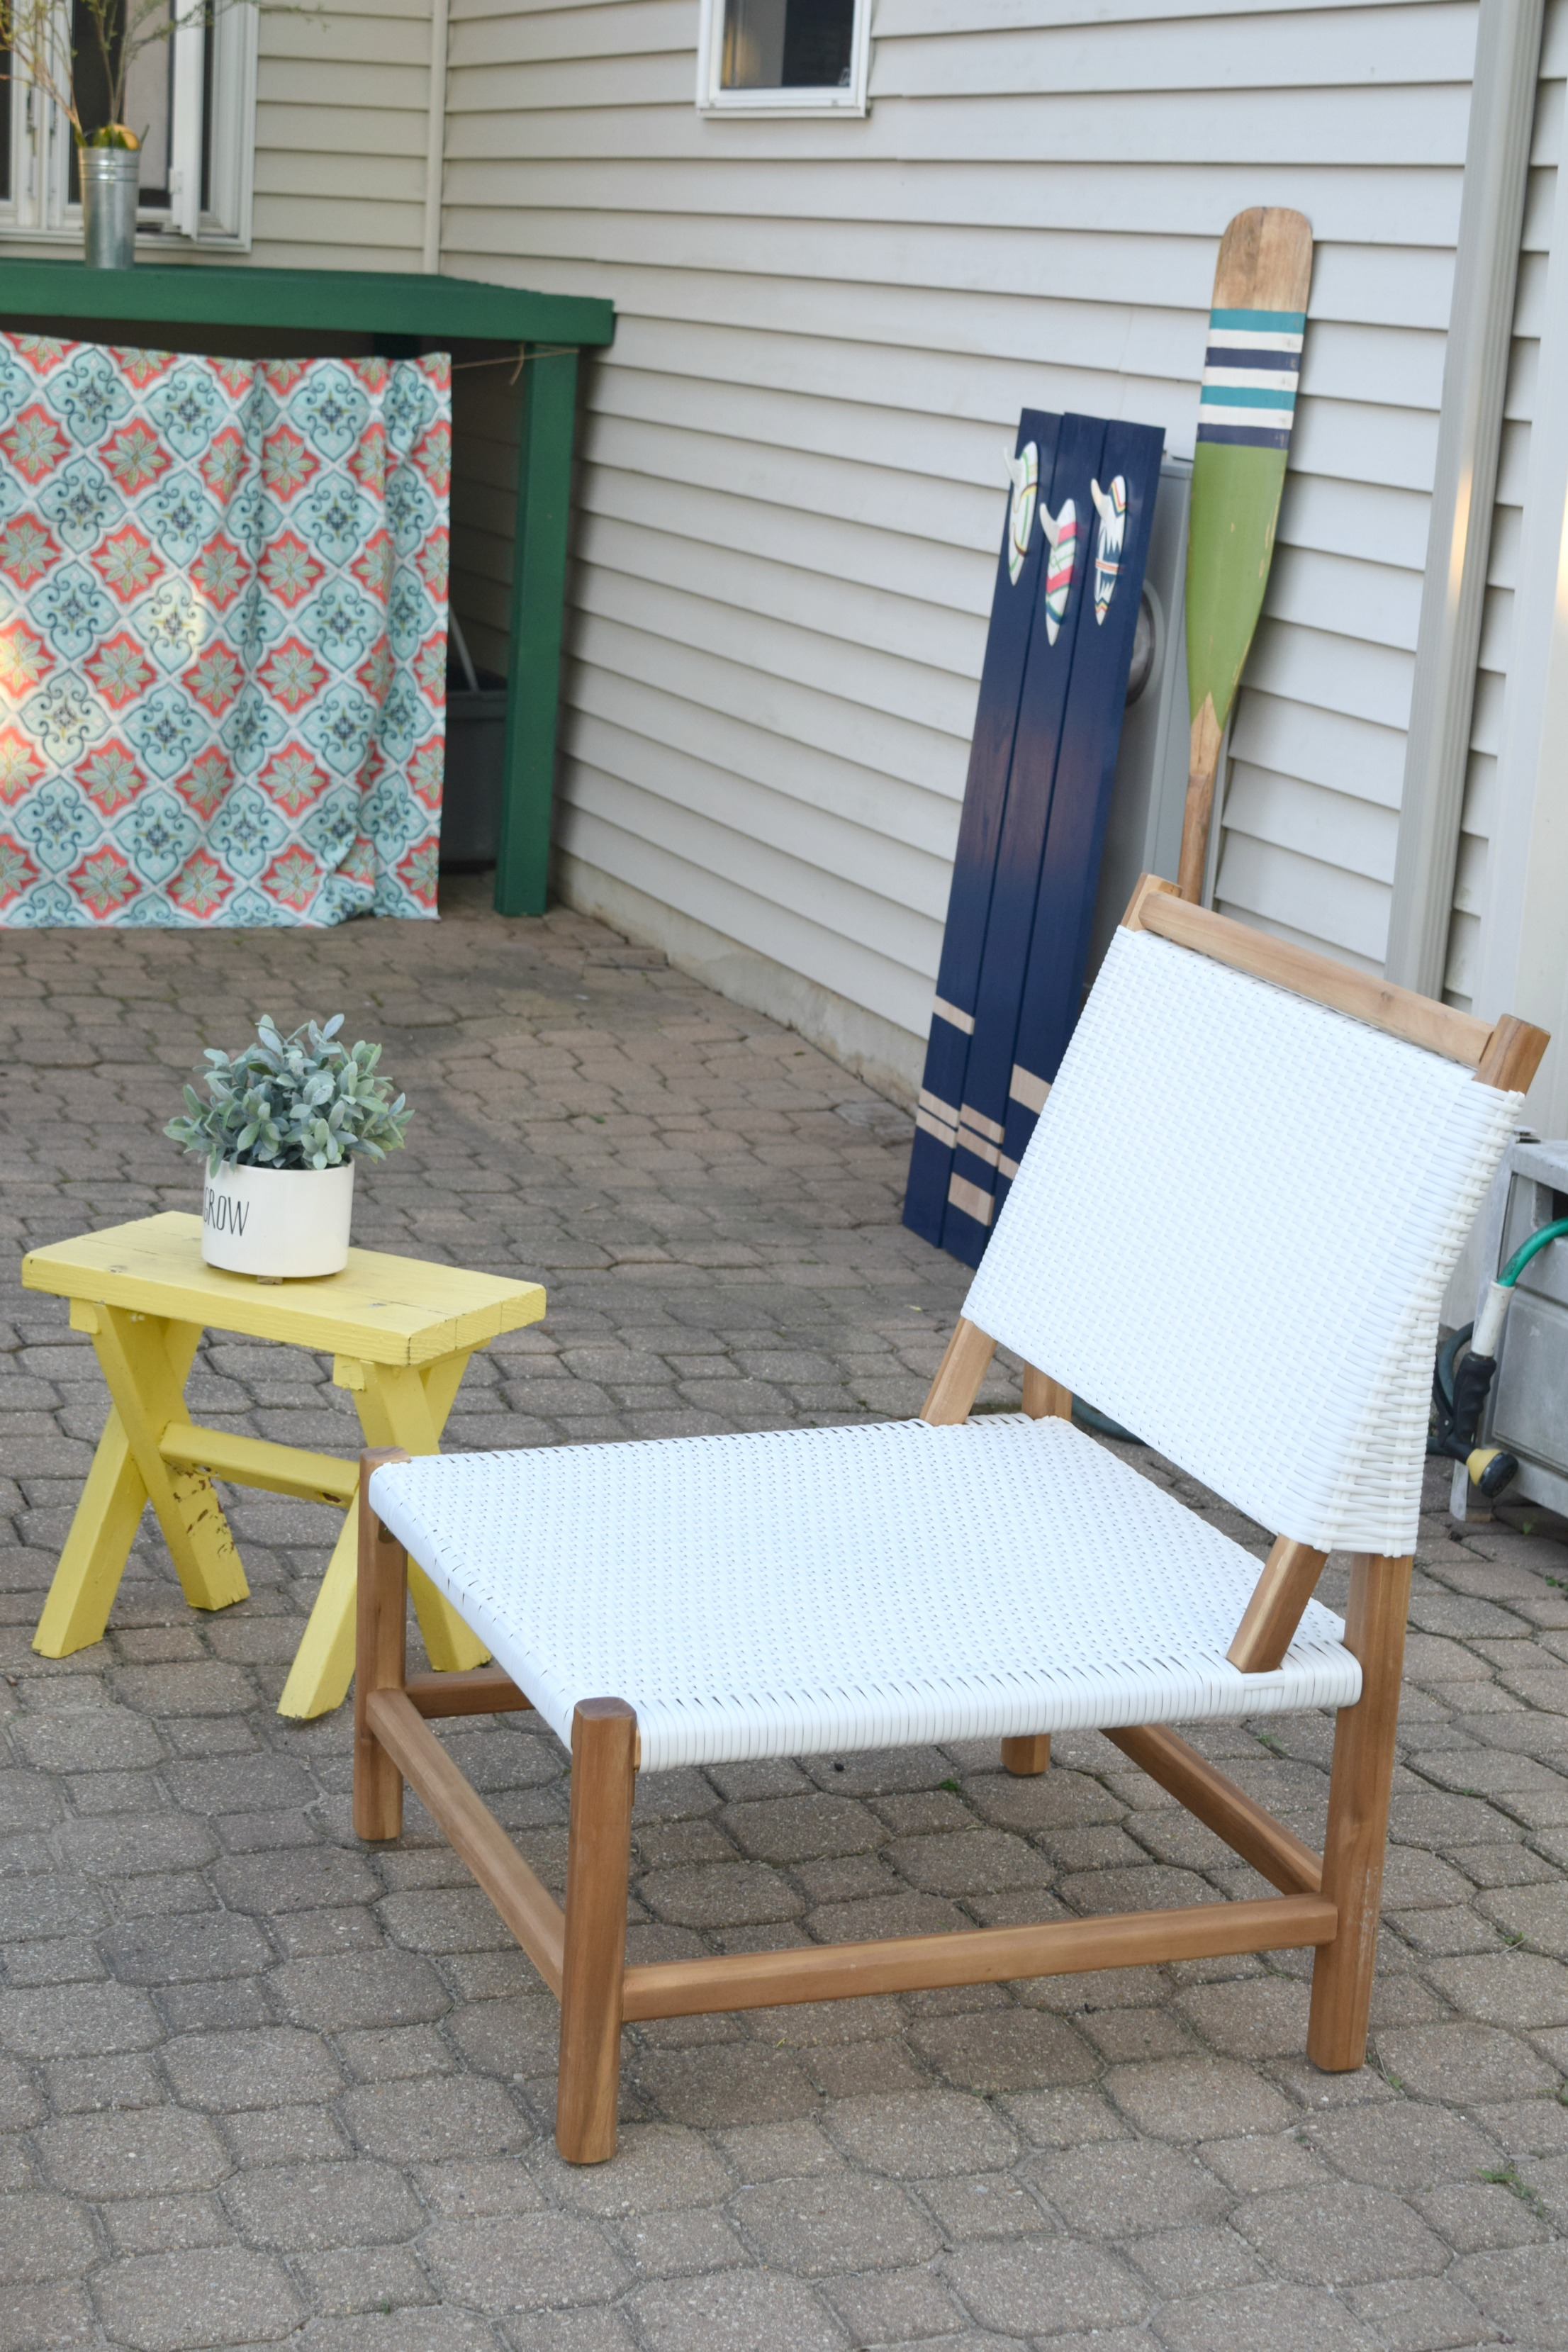 how to hide kids outdoor toys a diy storage solution our house now a home. Black Bedroom Furniture Sets. Home Design Ideas